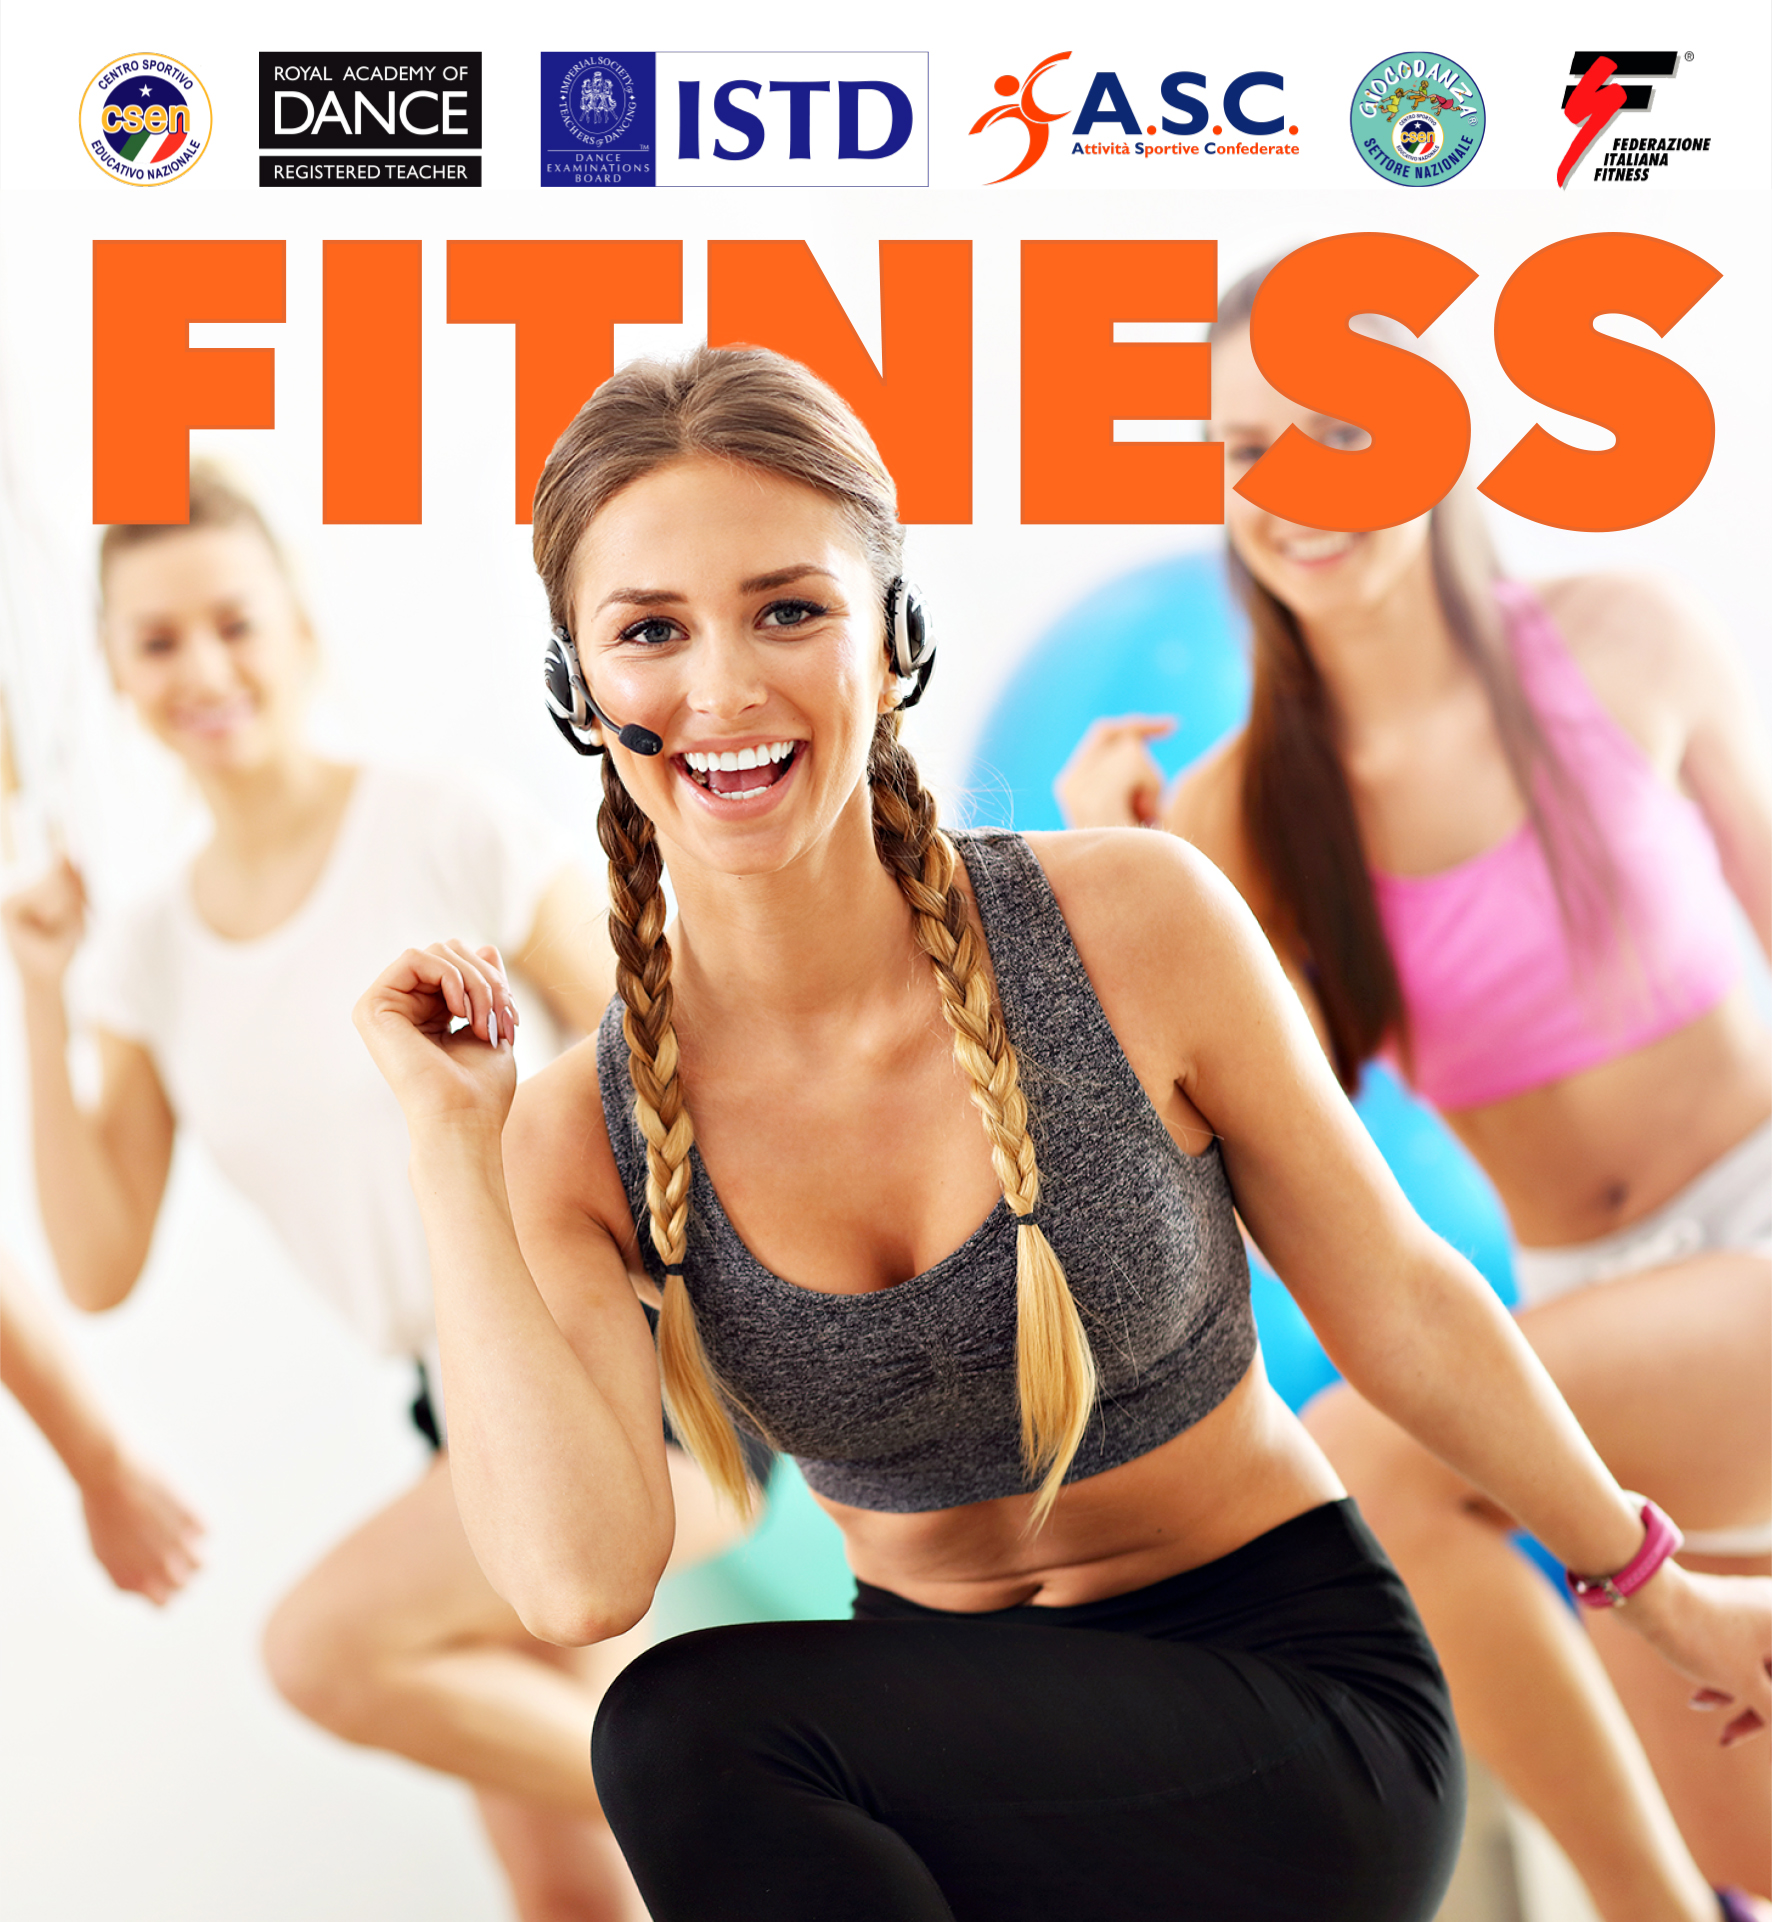 Corsi di Fitness a School of Art® Verona